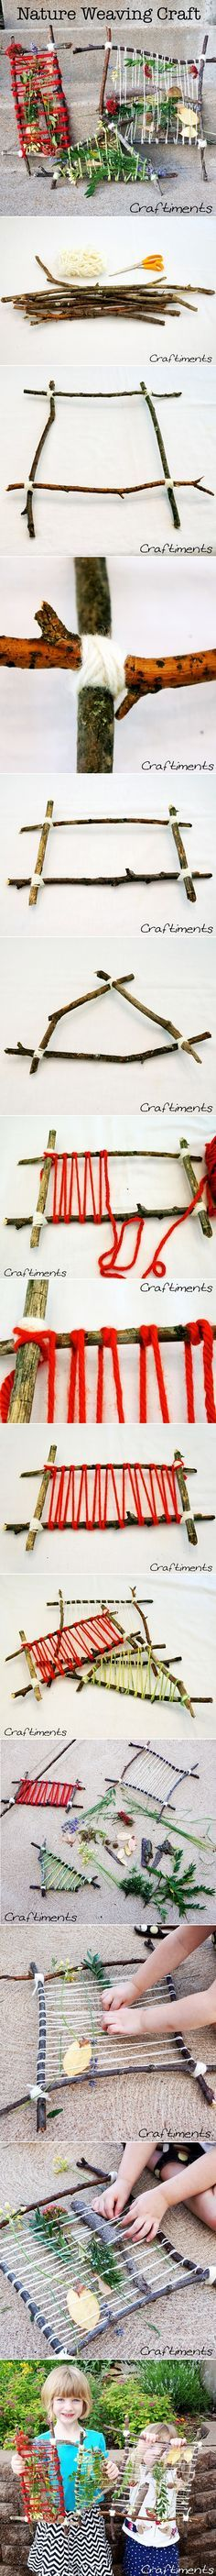 How to make DIY natural weaving loom, step by step tutorial / instructions Weben mit Naturmaterialien Theme Nature, Deco Nature, Best Summer Camps, Summer Fun, Crafts For Kids, Arts And Crafts, Weaving Projects, How To Make Diy, Camping Crafts